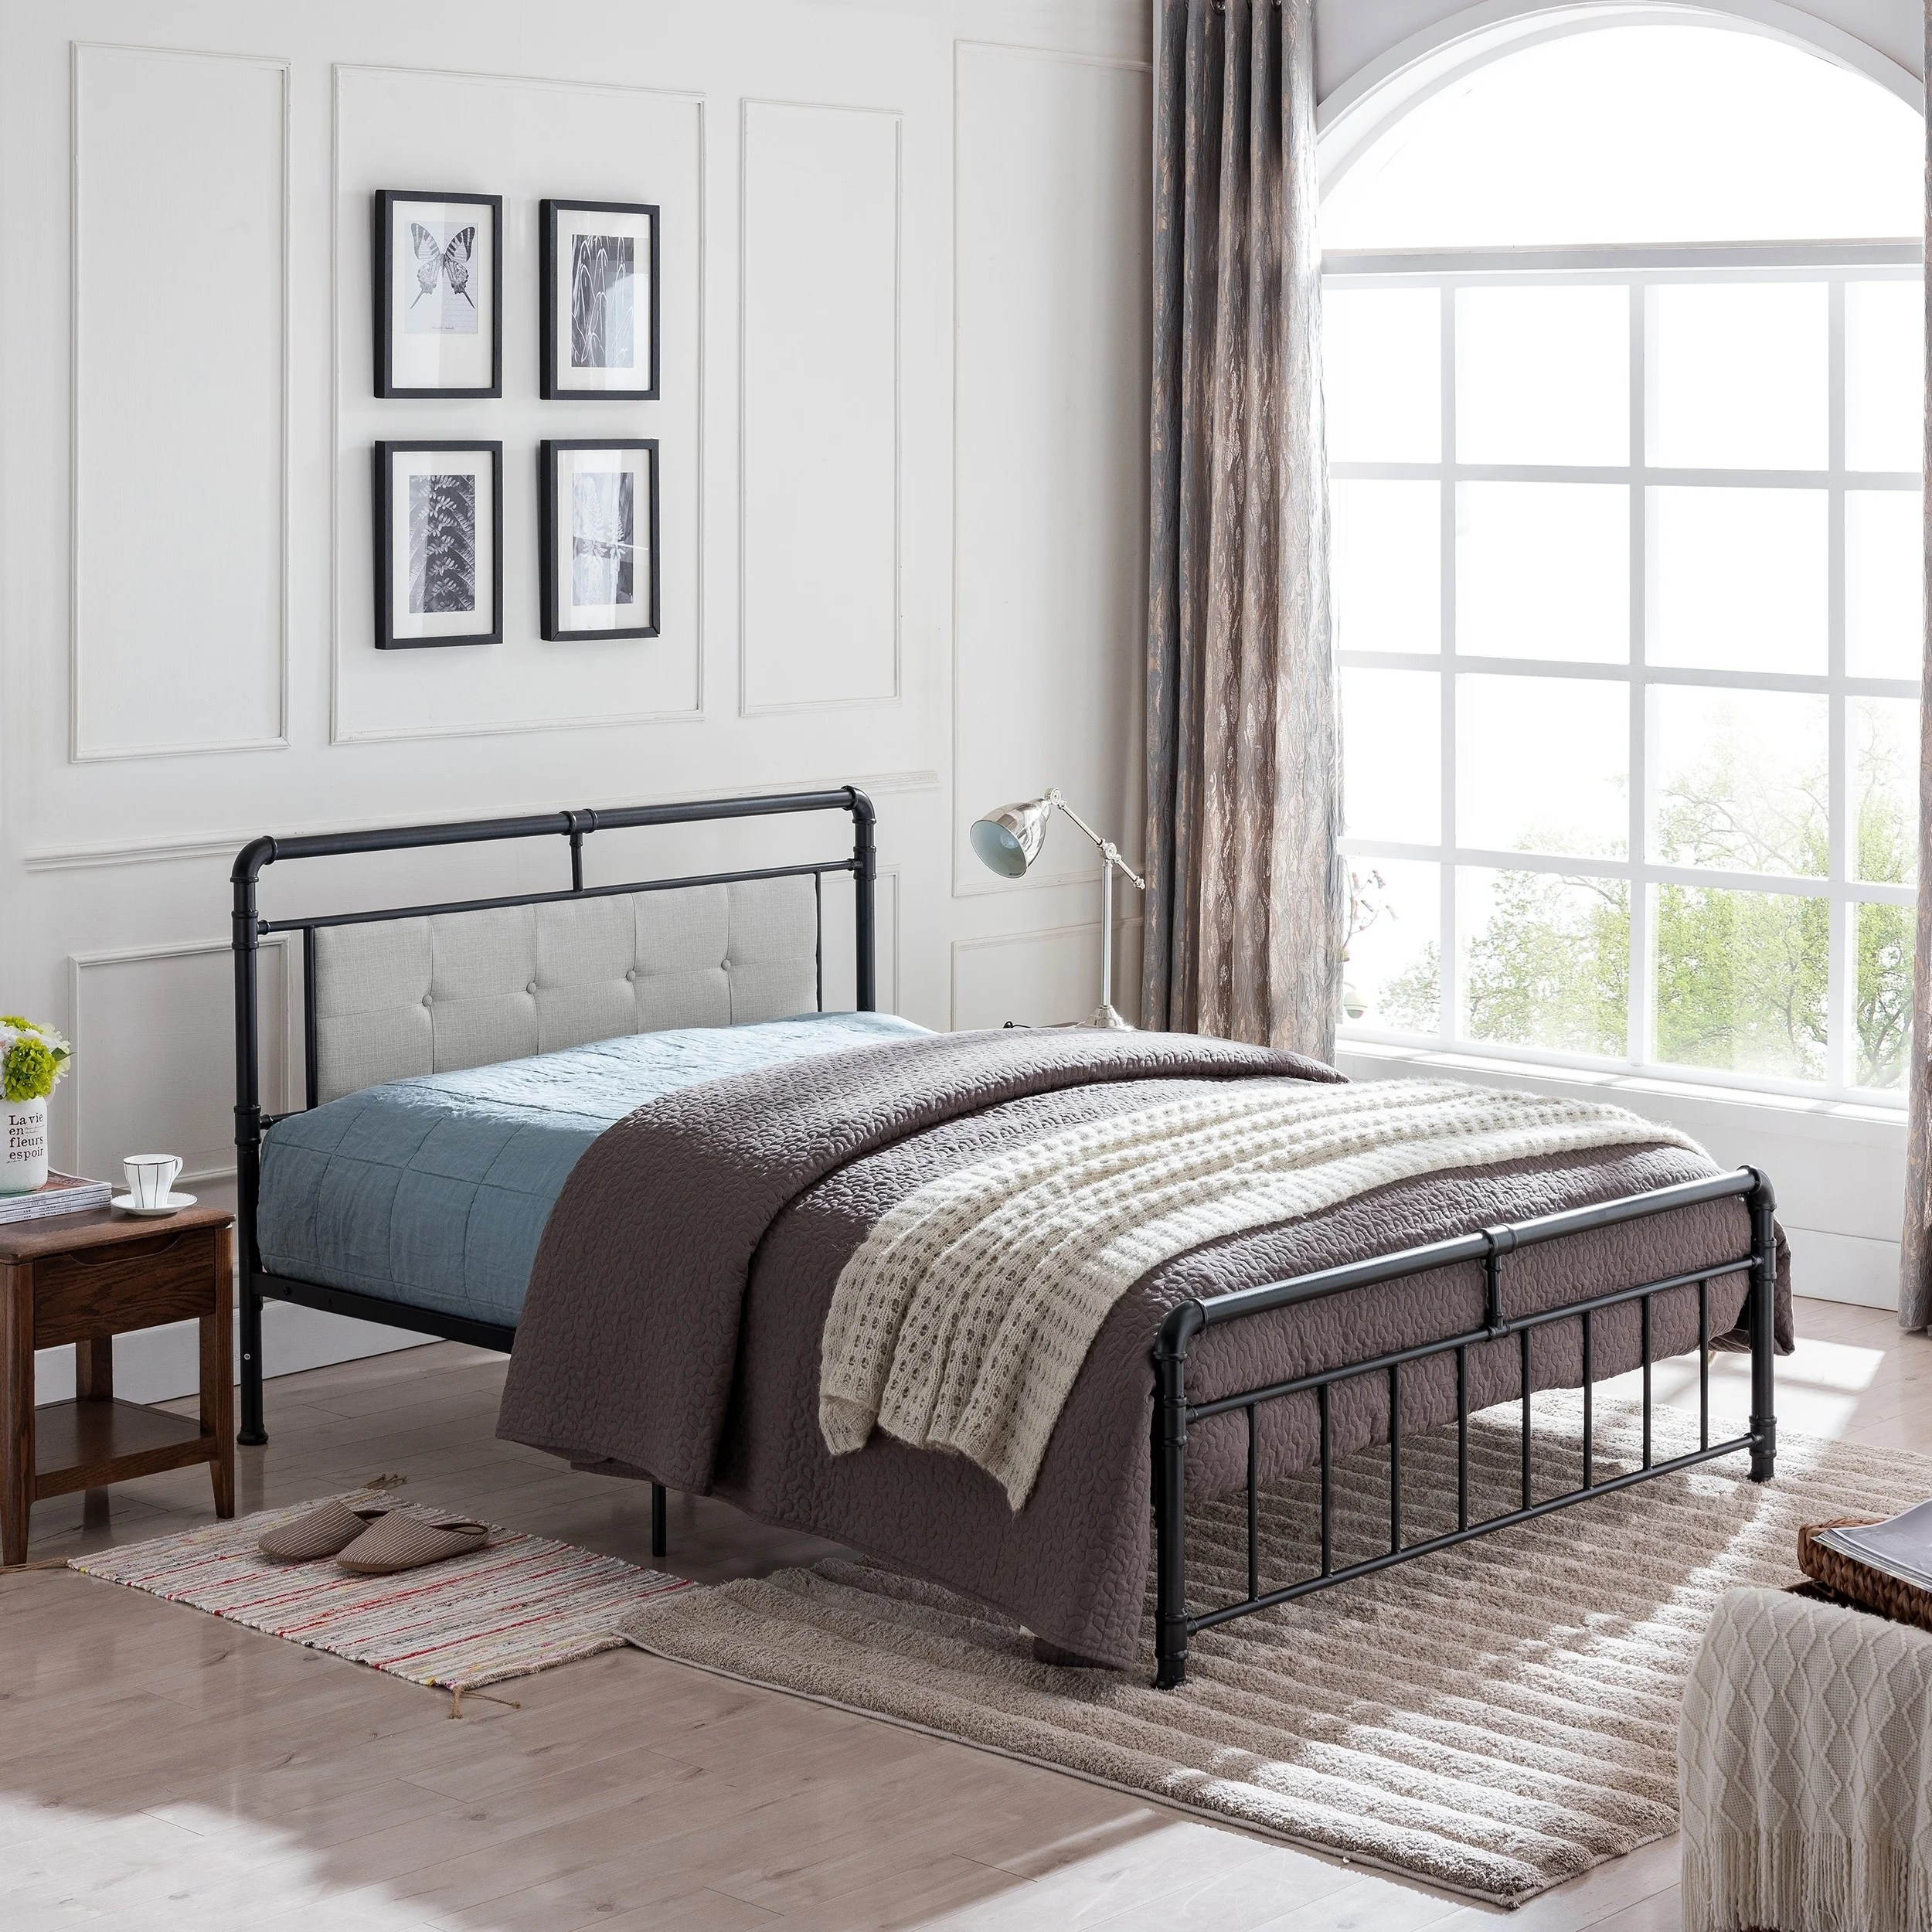 Metal Bed Headboards Goddard Industrial Upholstered Headboard Queen Size Iron Bed Frame By Christopher Knight Home